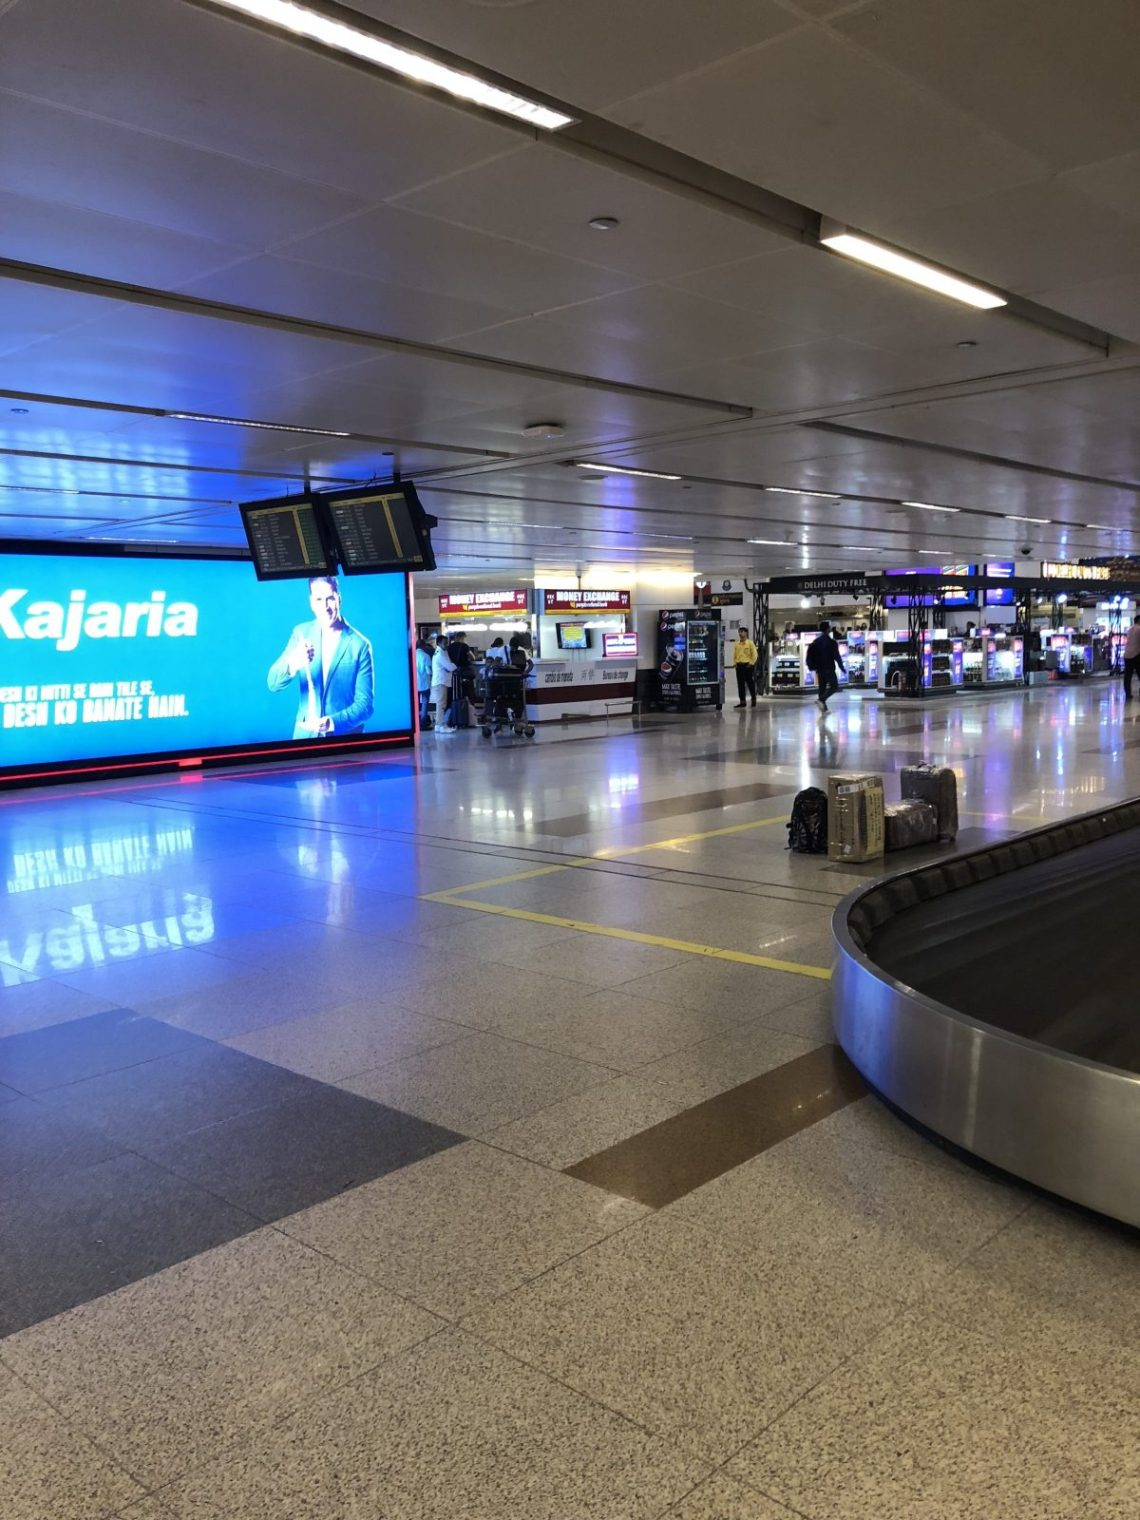 Baggage belts marked on screen